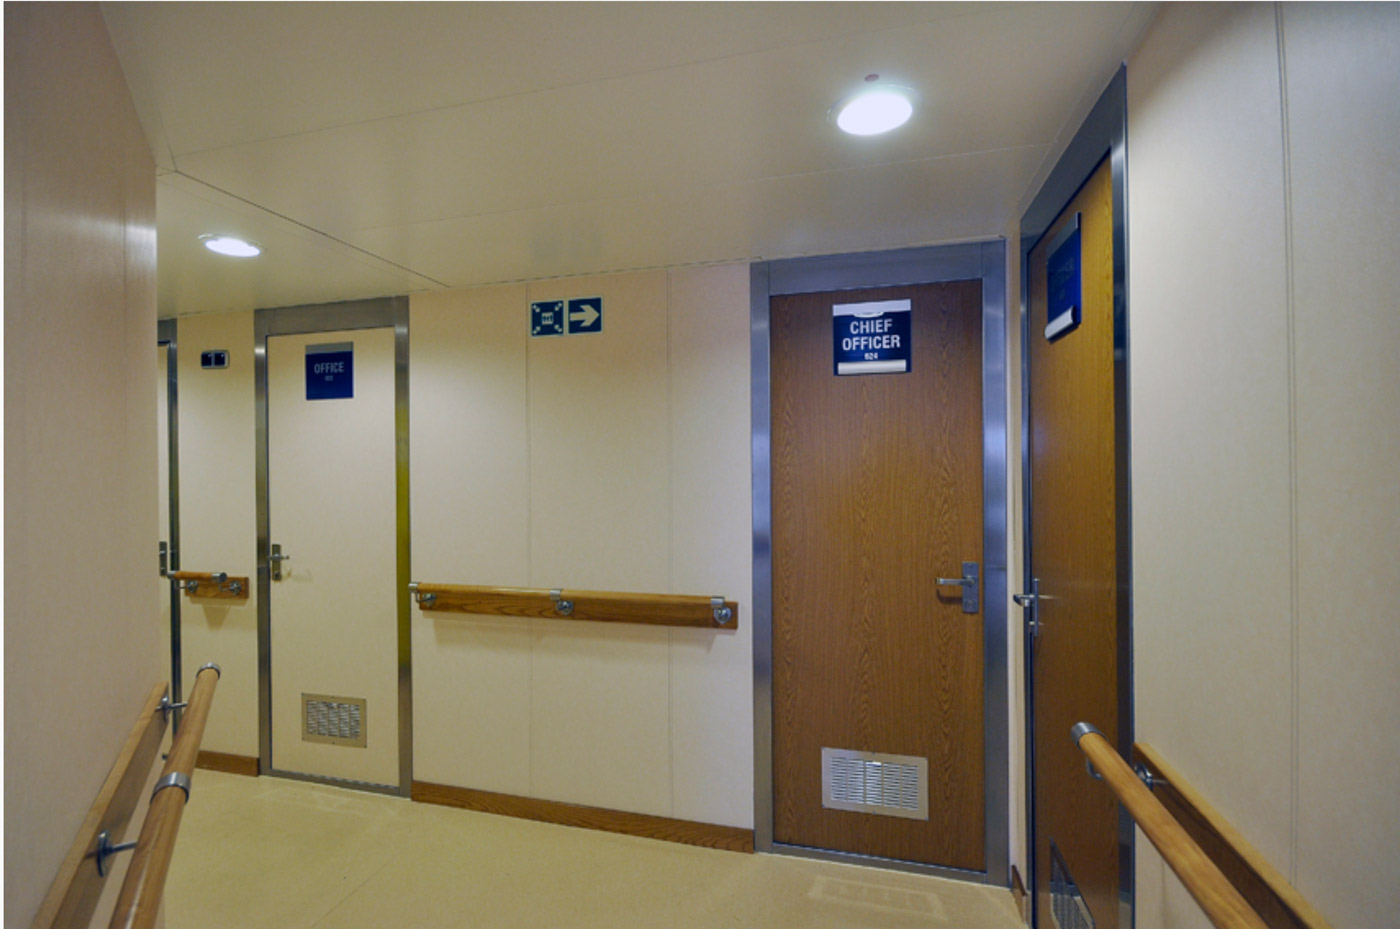 Interior Joiner Panels, Ceilings and Fire Doors